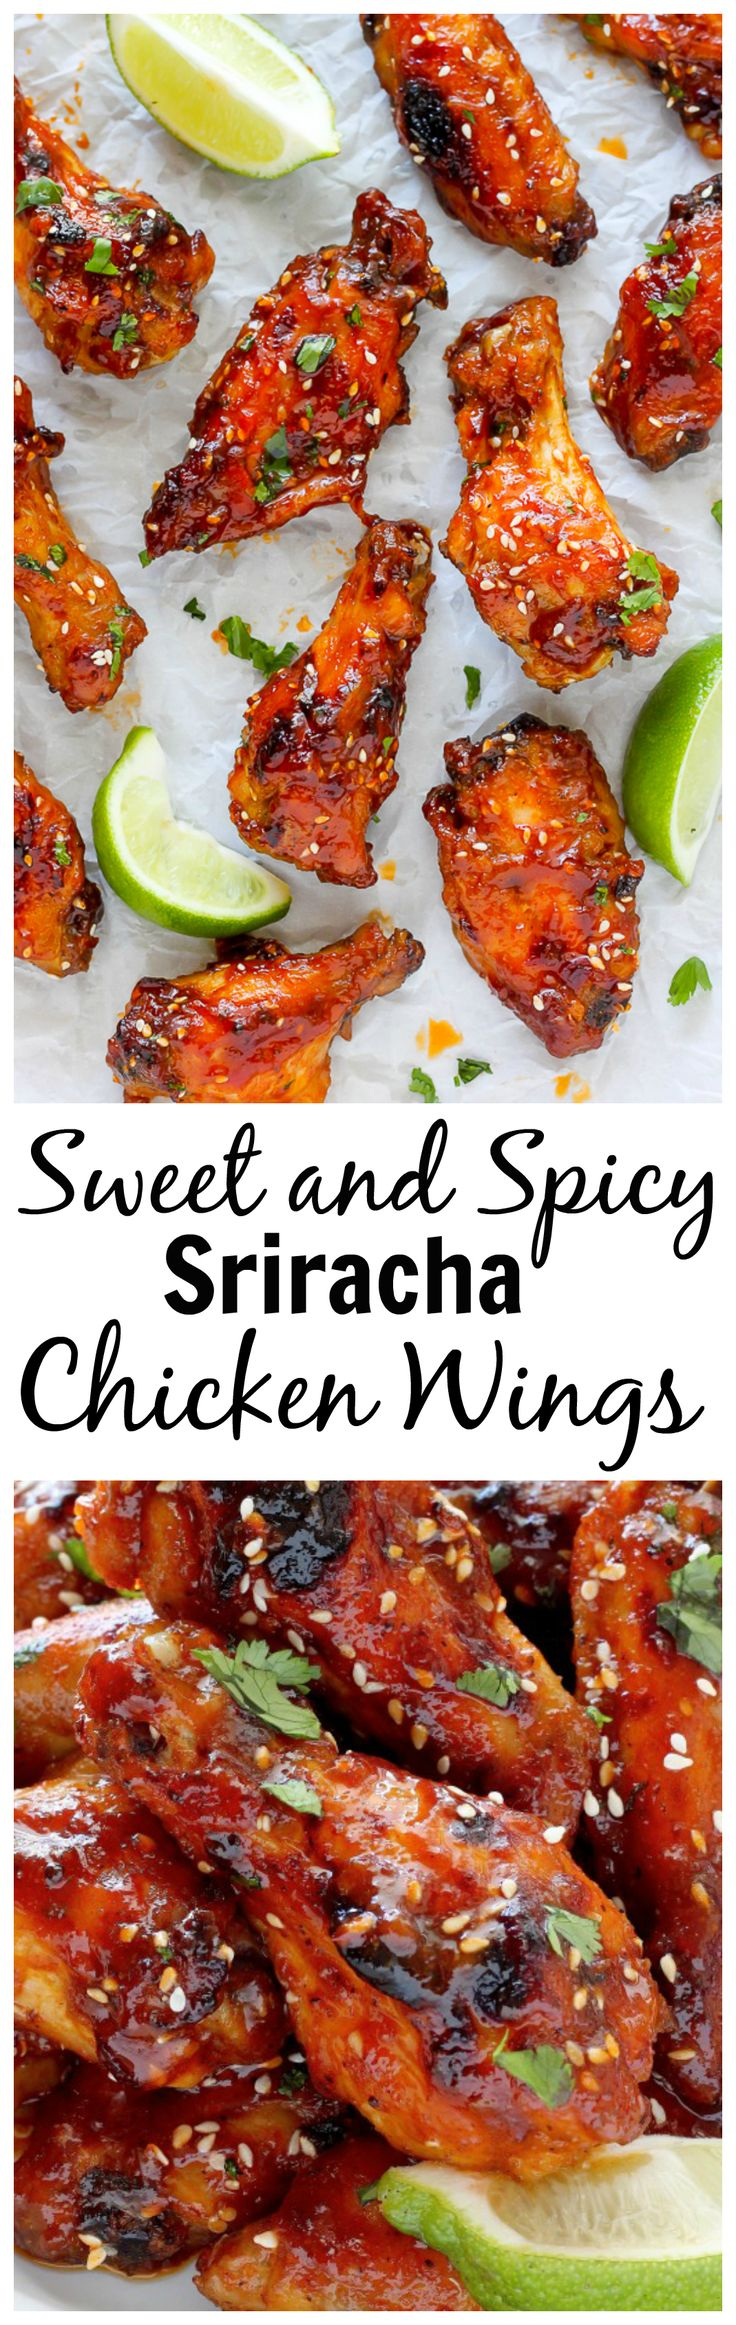 Sweet and Spicy Sriracha Baked Chicken Wings - these are seriously amazing!02-2016 sauce fait avec cassonade, margarine. très piquante délicieuses